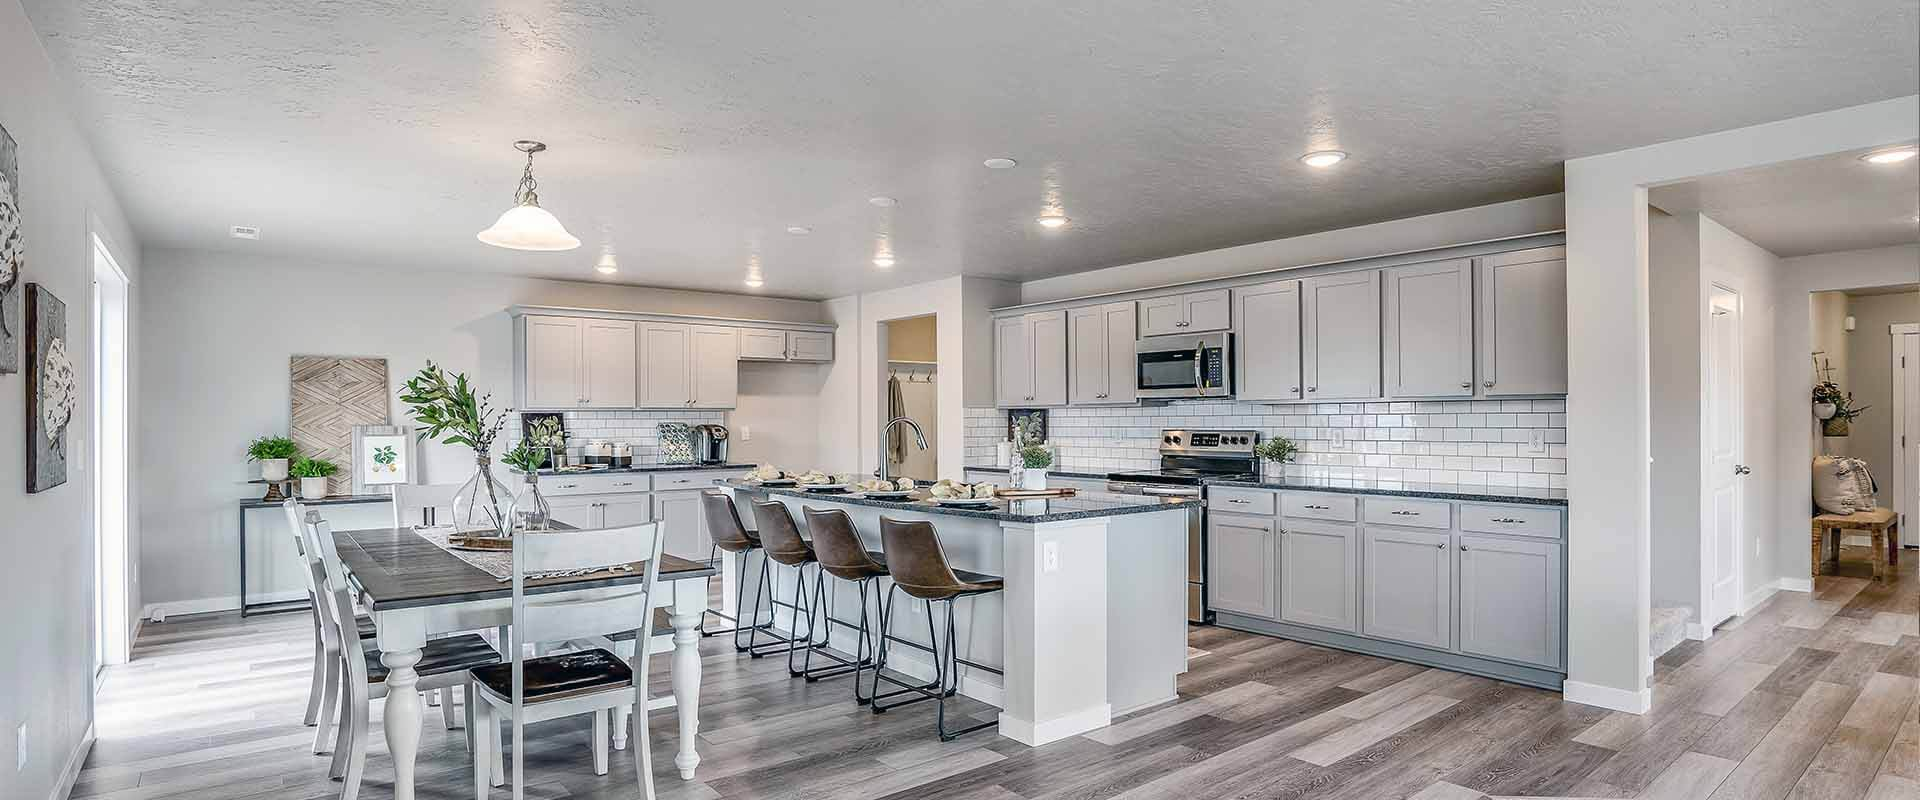 Kitchen-Charter-Pointe-New-Homes-and-Communities-Boise-02.jpg